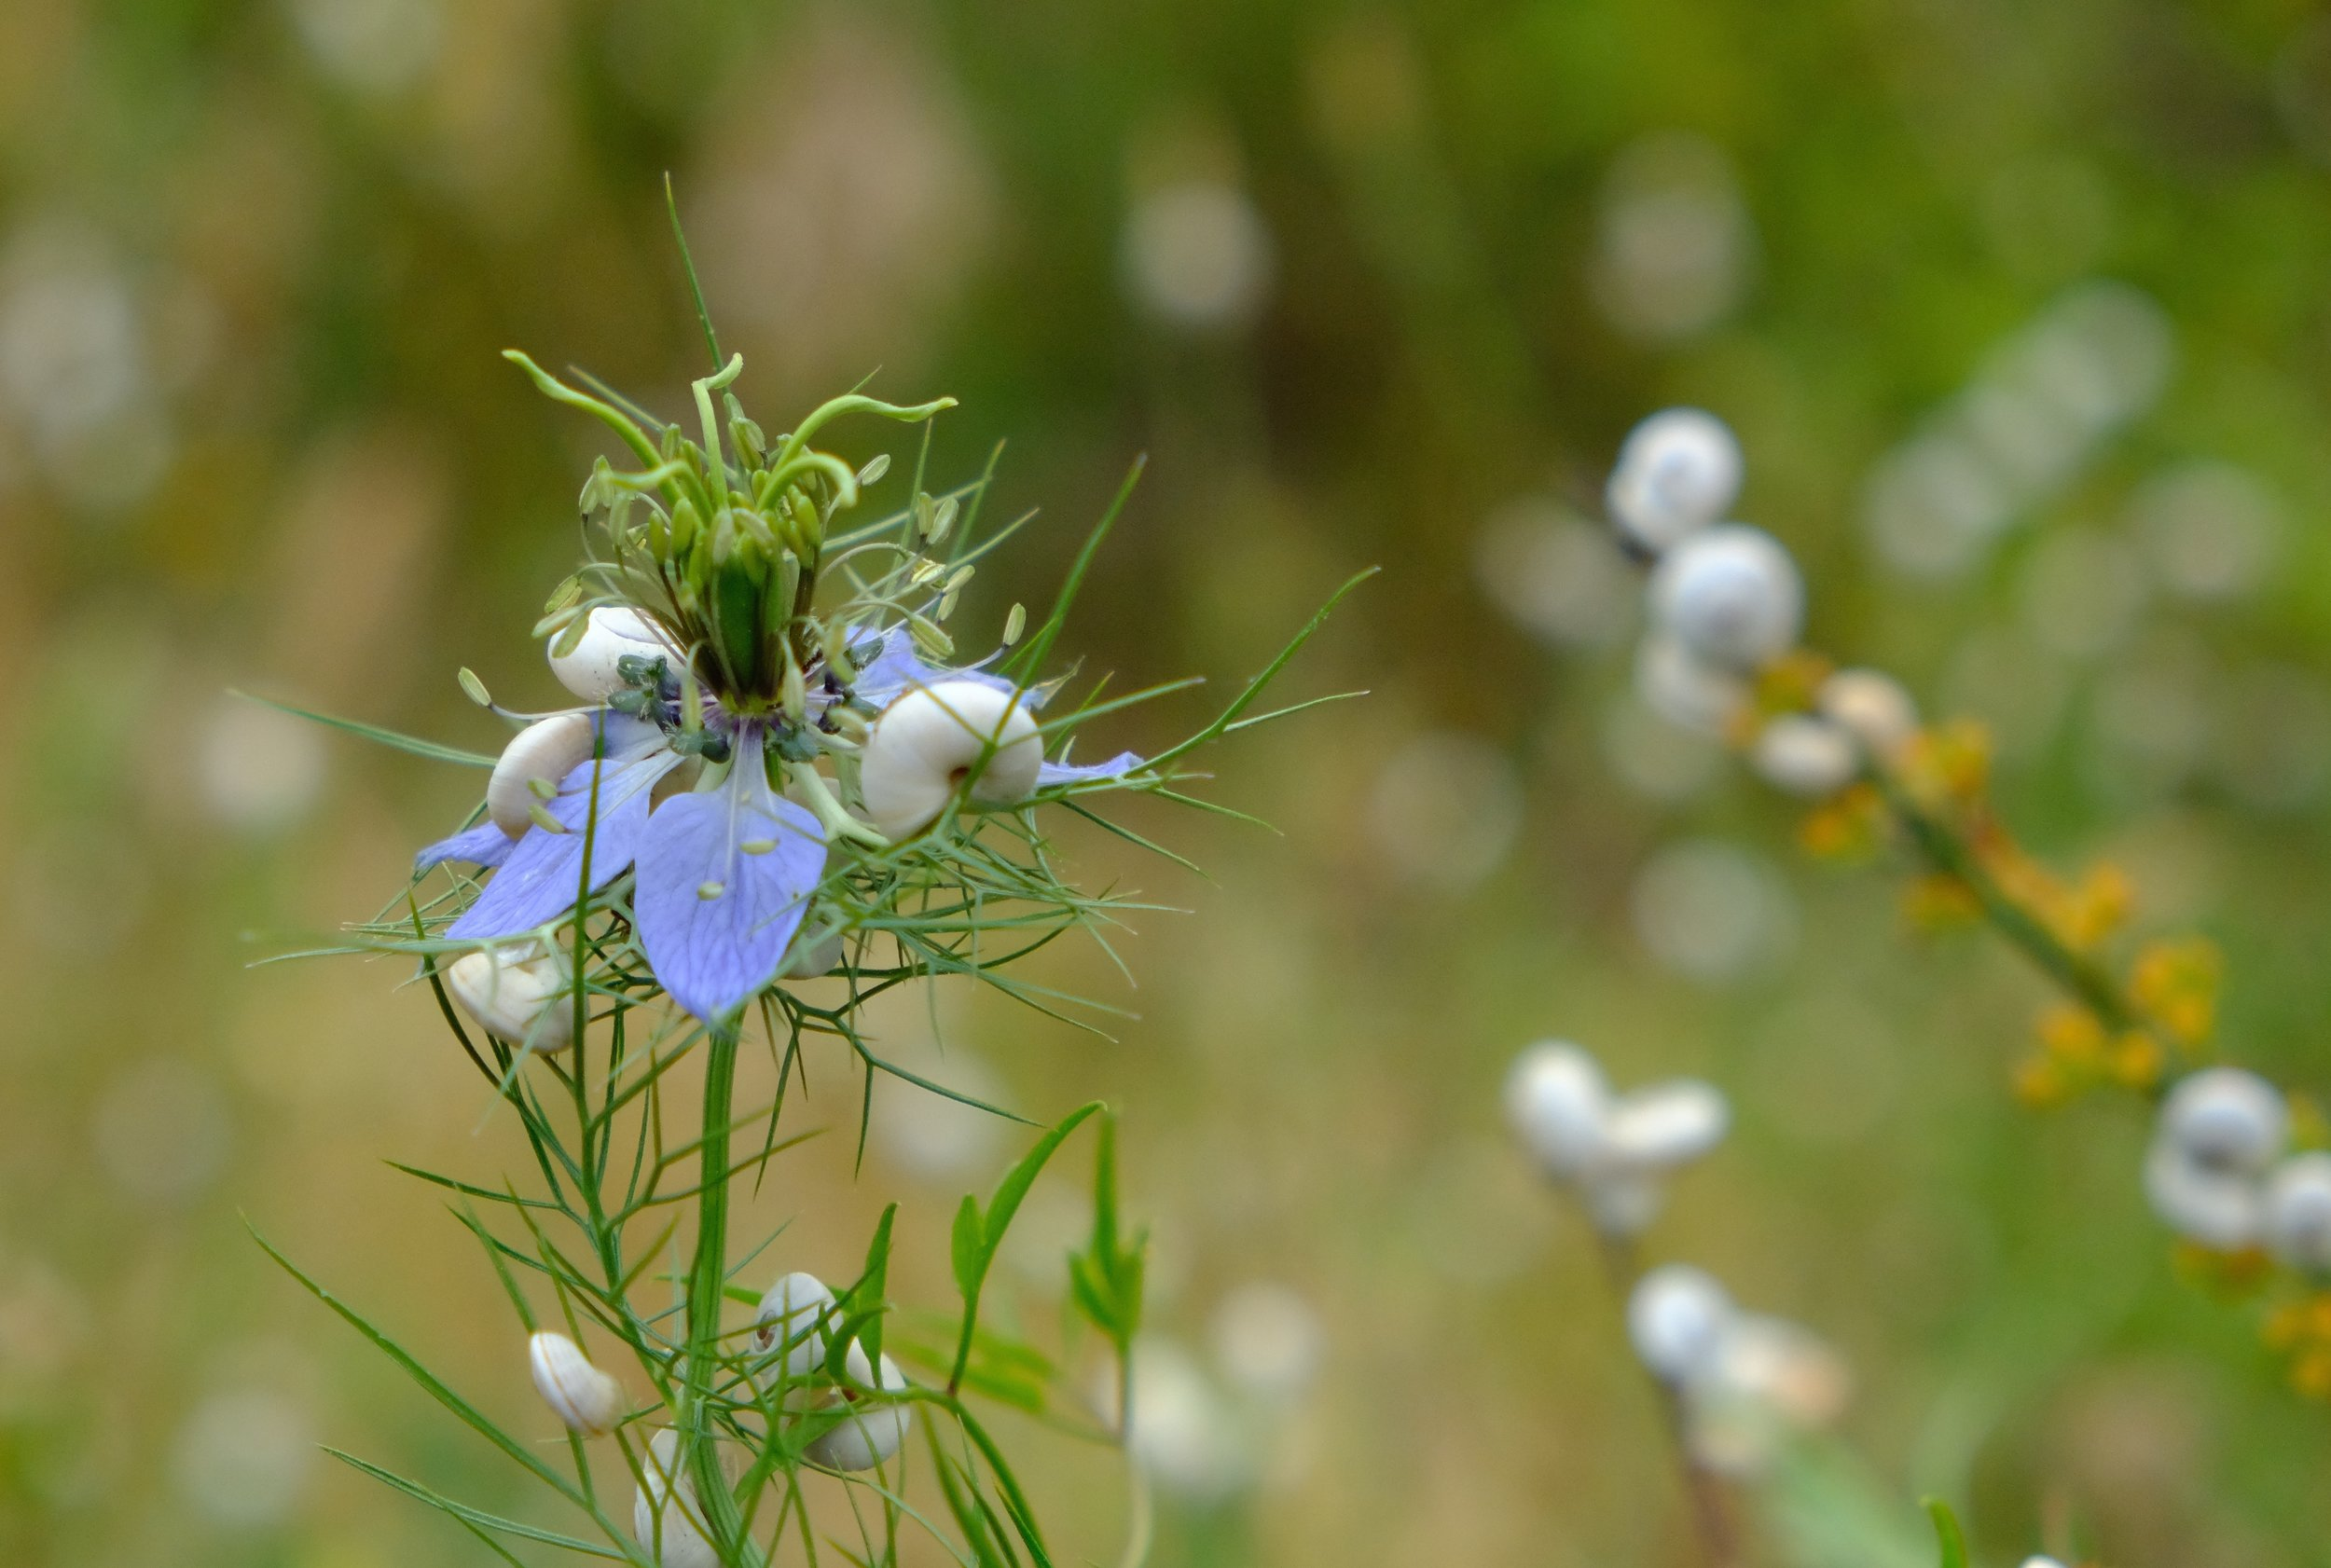 Tiny snails clinging to wild love-In-a-mist  (Nigella.)  They cover many of the plants here like limpets. They also stick to the bonnet of my car and have often survived the long journey to England.